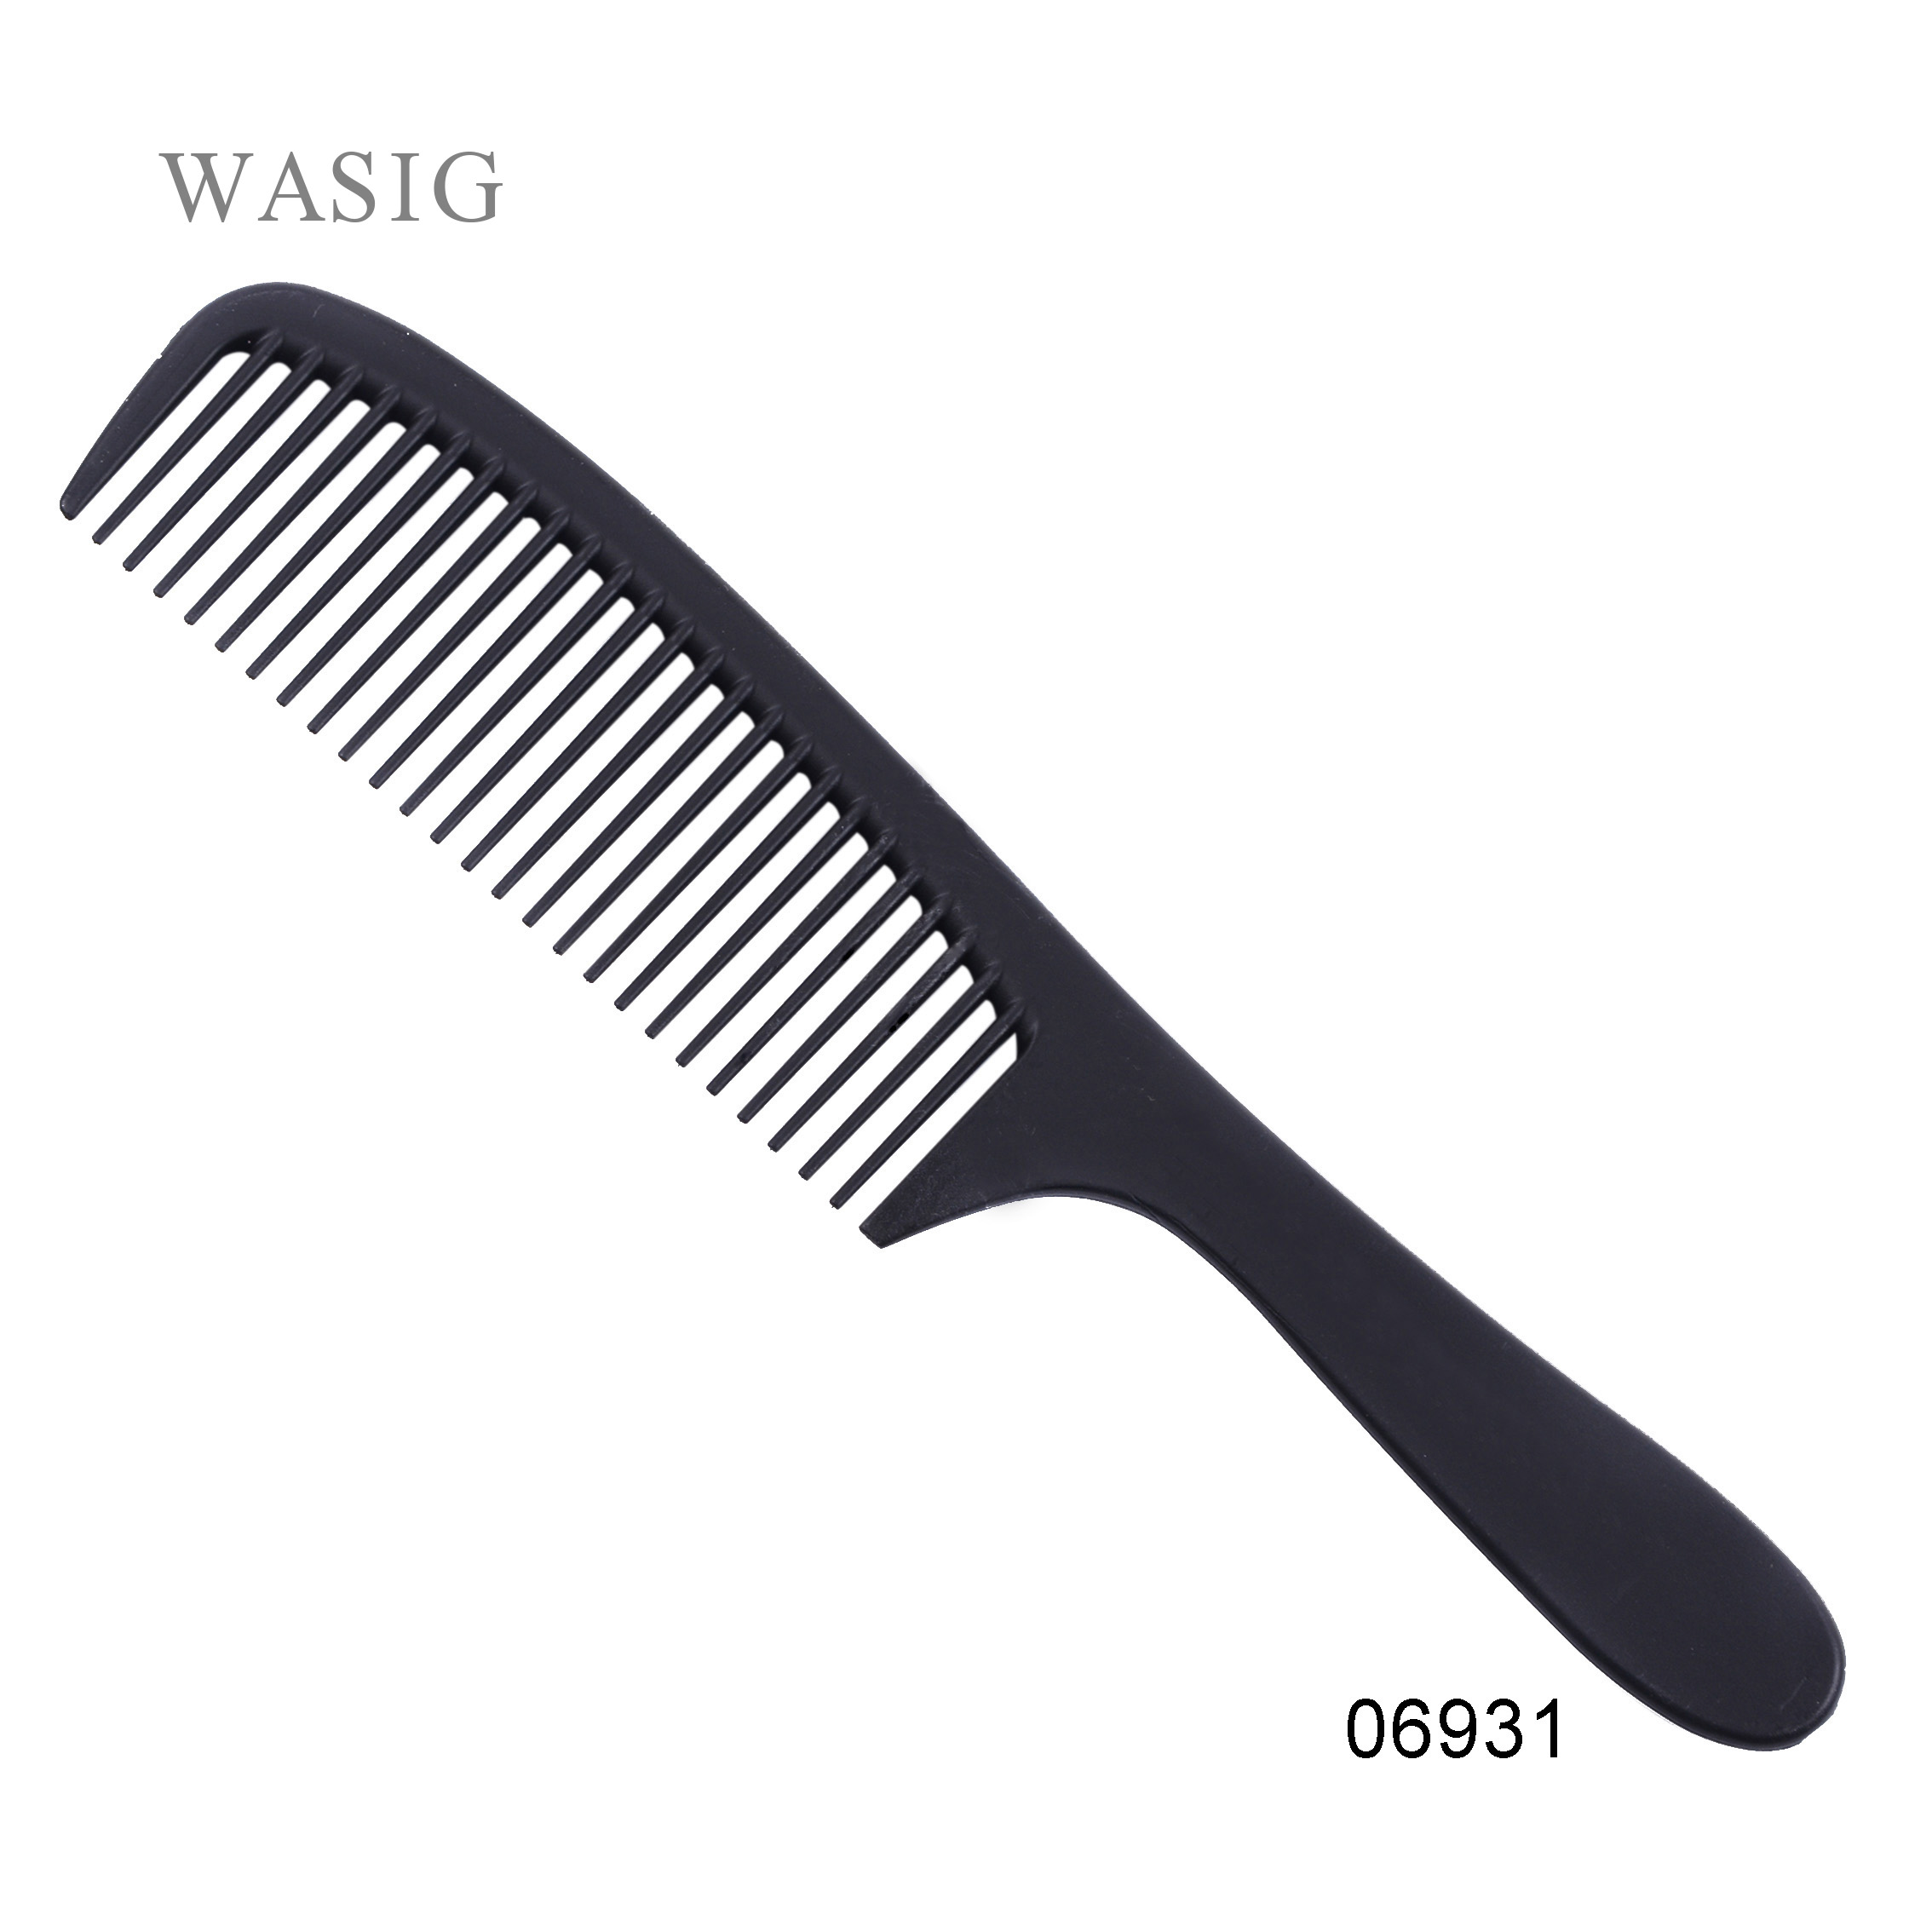 1 Pcs Large Carbon Anti Static Comb Heat Resistant Antistatic Cutting Comb